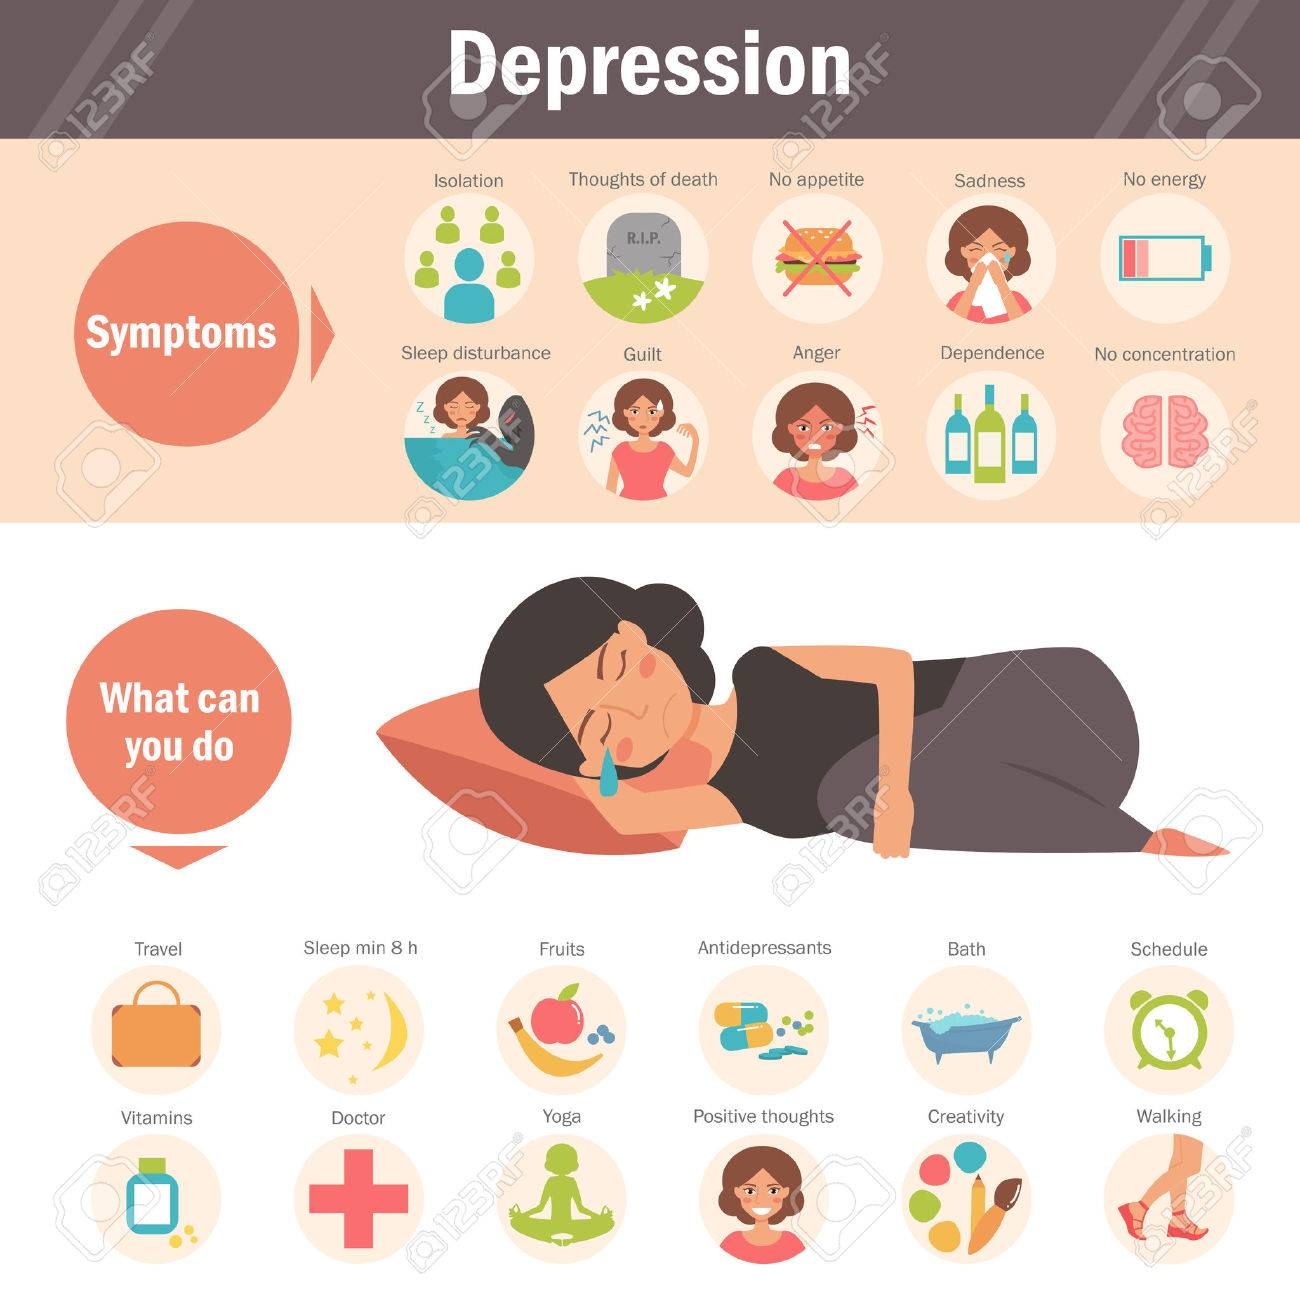 depression symptoms and treatment cartoon character isolated